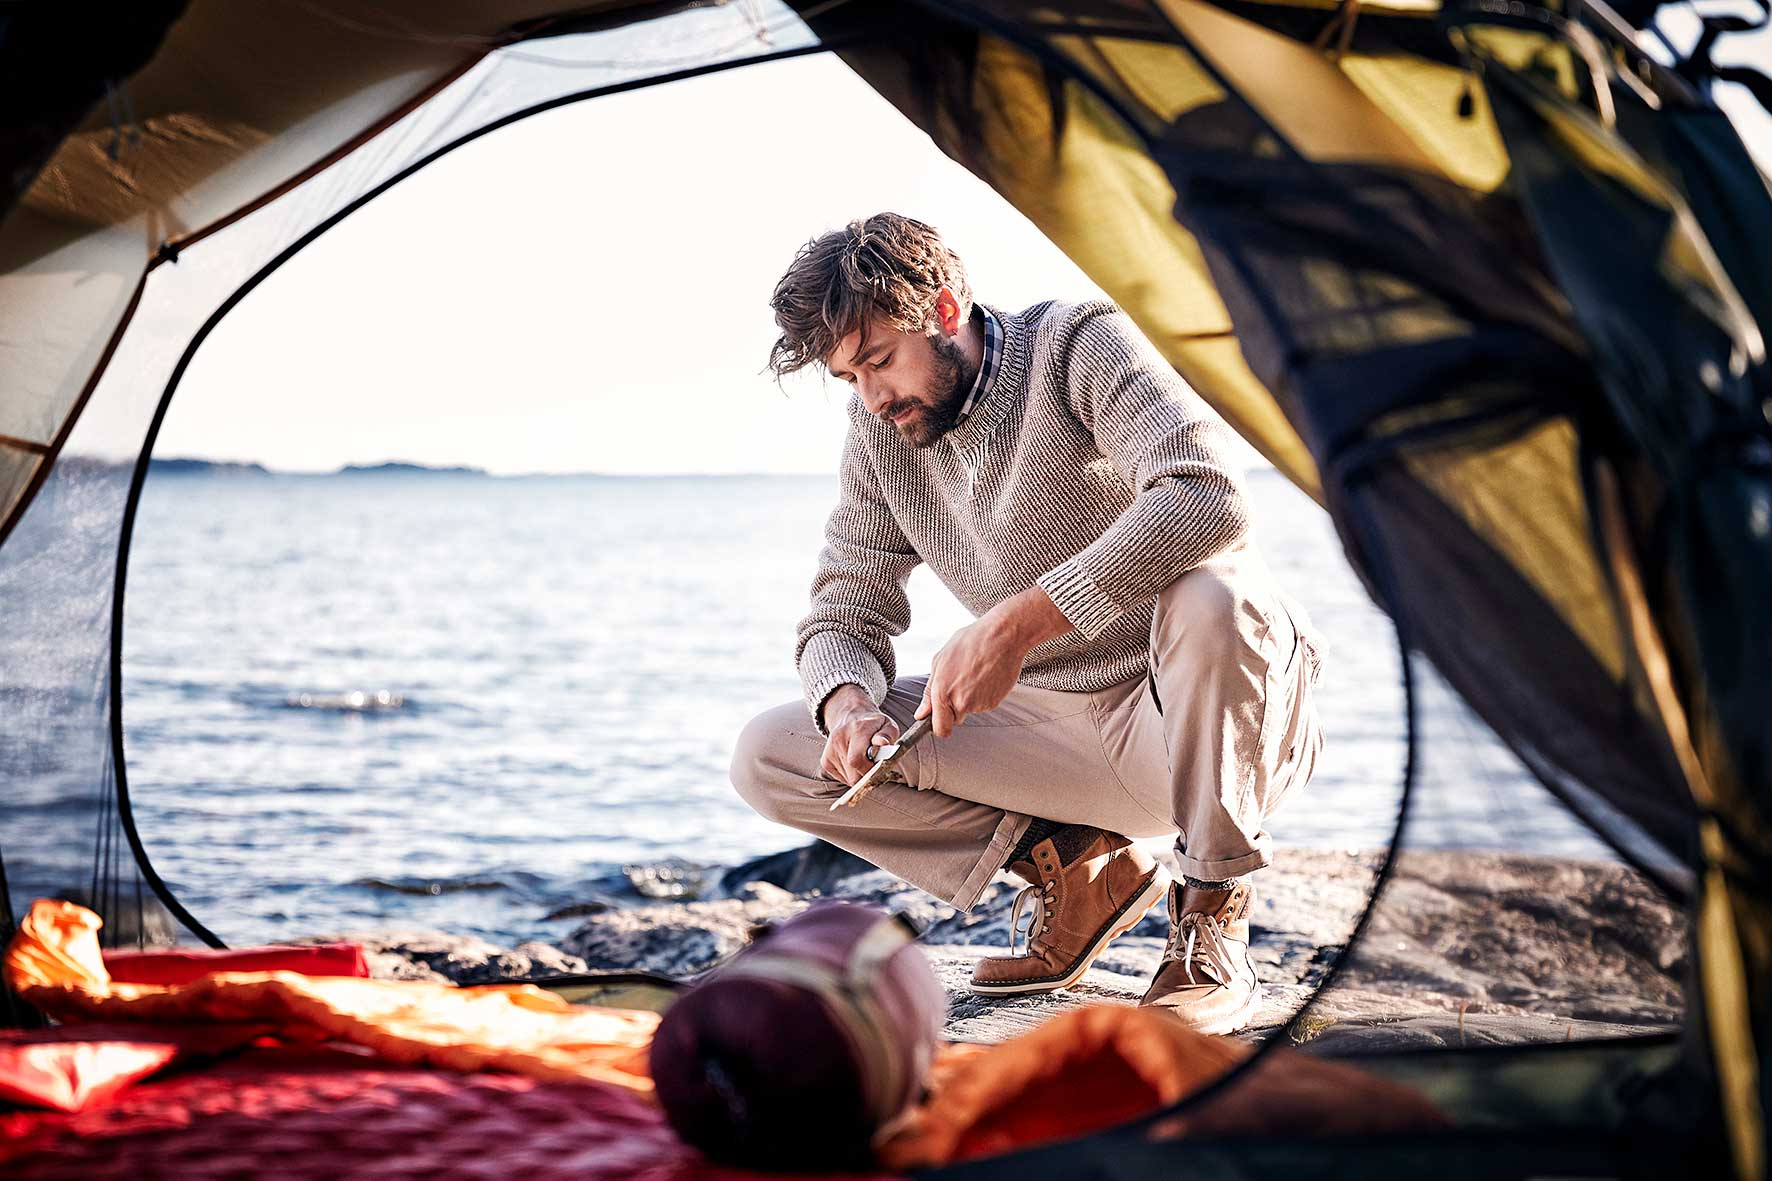 Nicklas crouching on a rock near the sea wearing fair fashion and whittling away at a stick, shot through the inside of his tent.